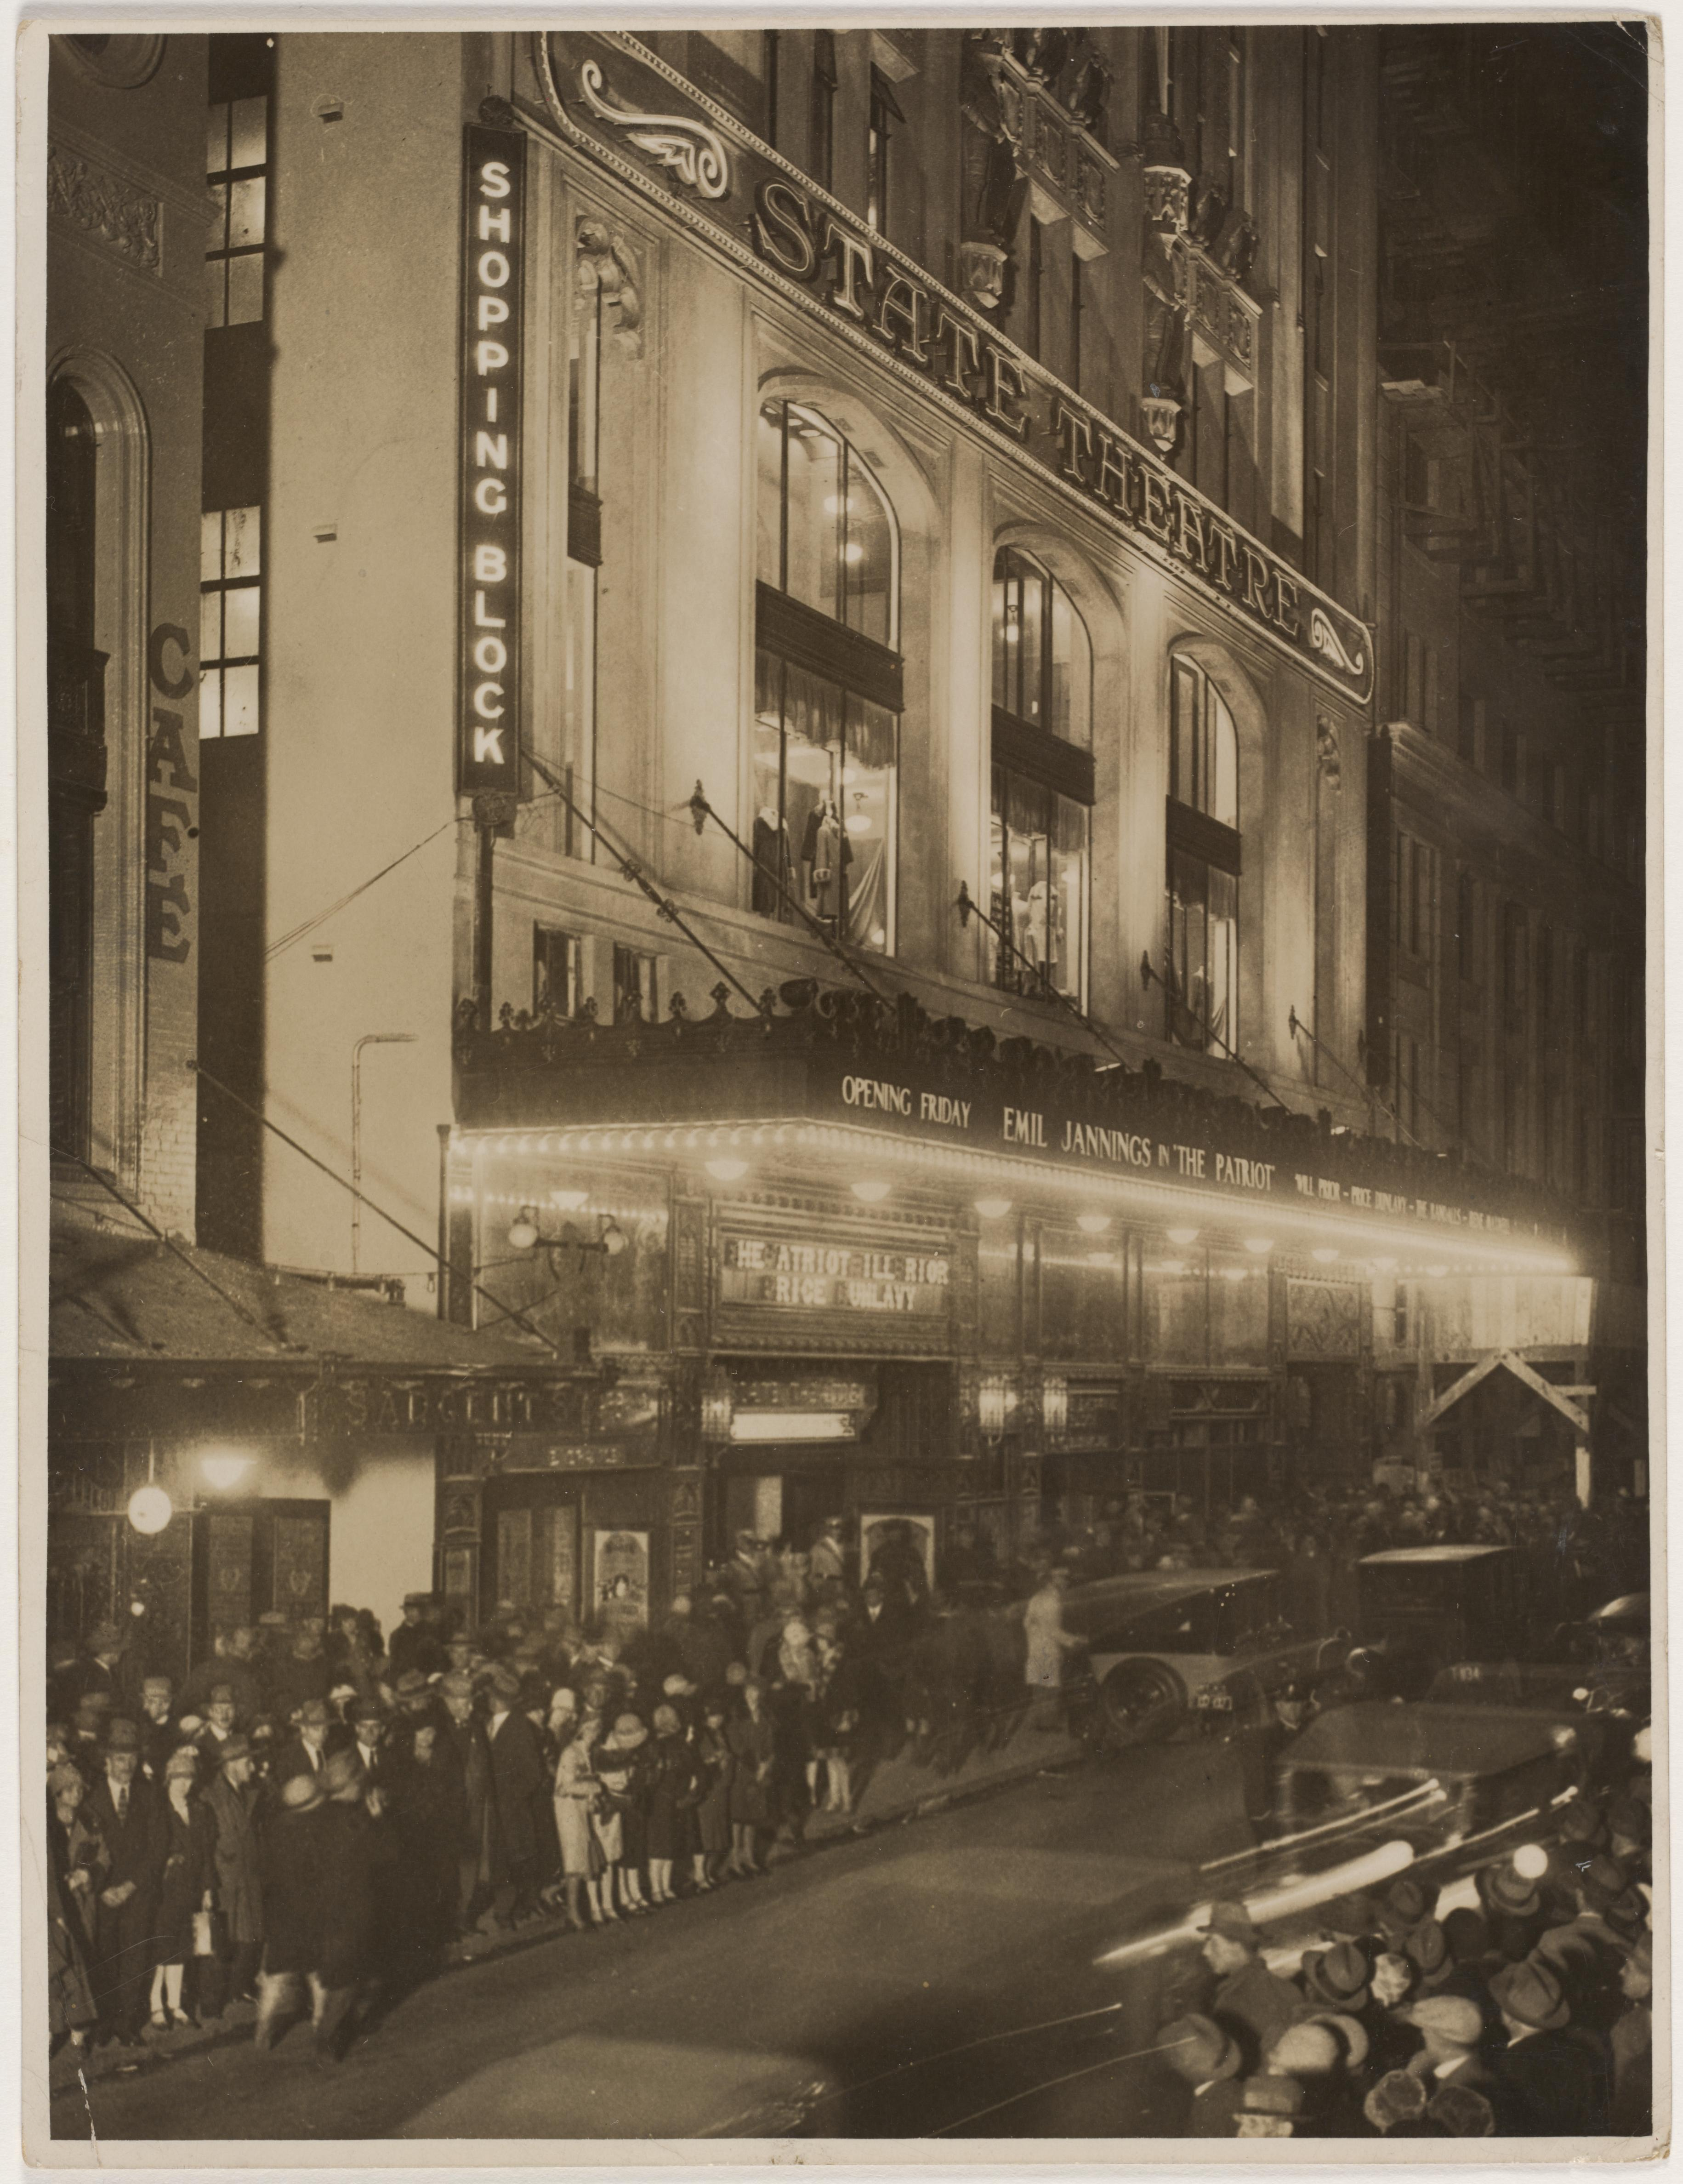 Australian premiere of The Patriot, starring Emil Jannings, at the opening of the State Theatre, Sydney, Friday 7 June 1929 / photographer unknown